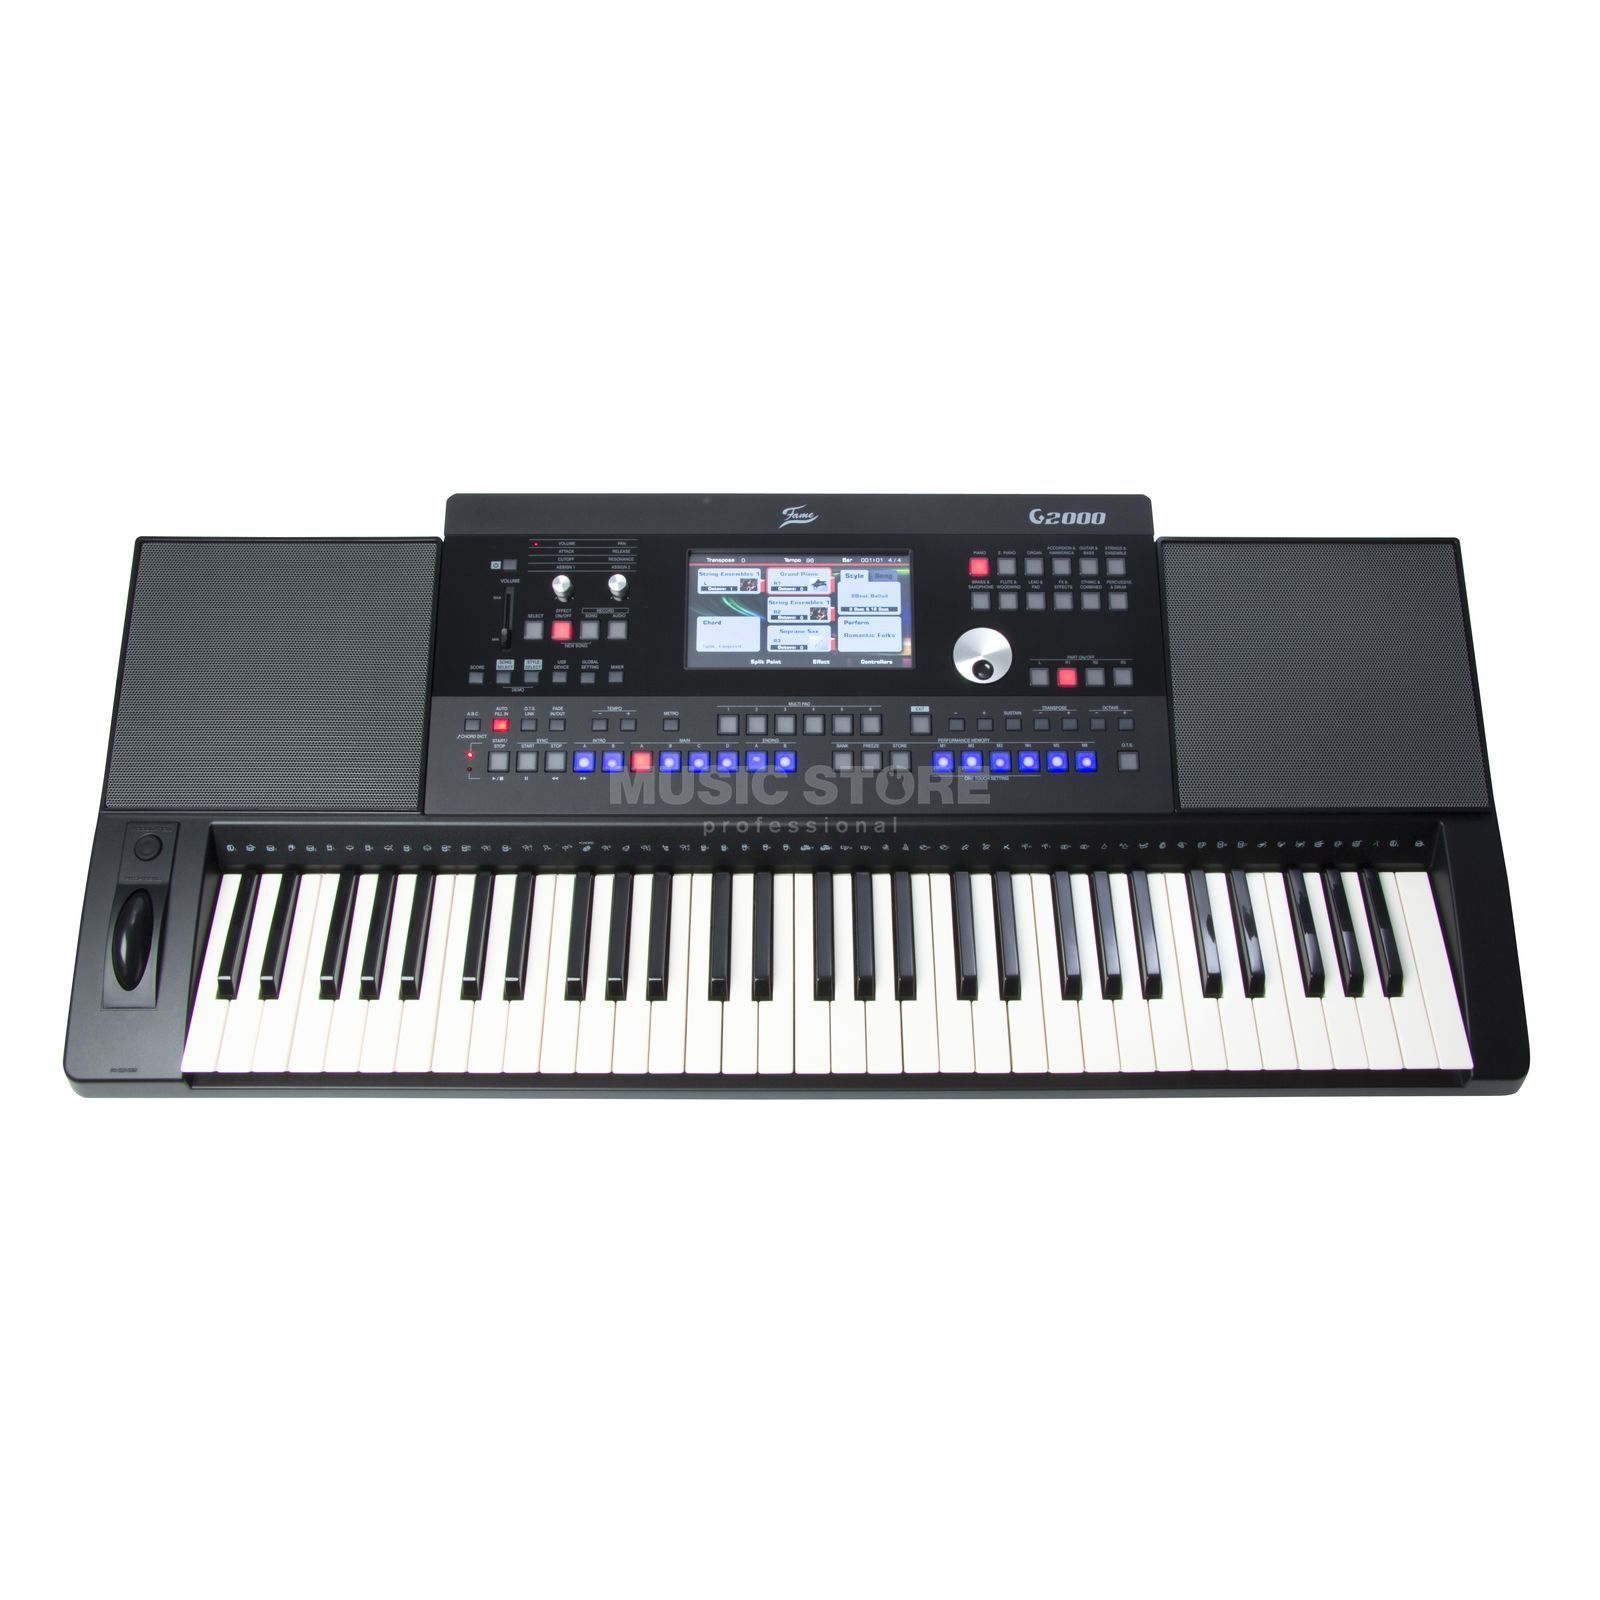 Fame G2000 Workstation Keyboard 61 Touch-Sensitive Keys Product Image